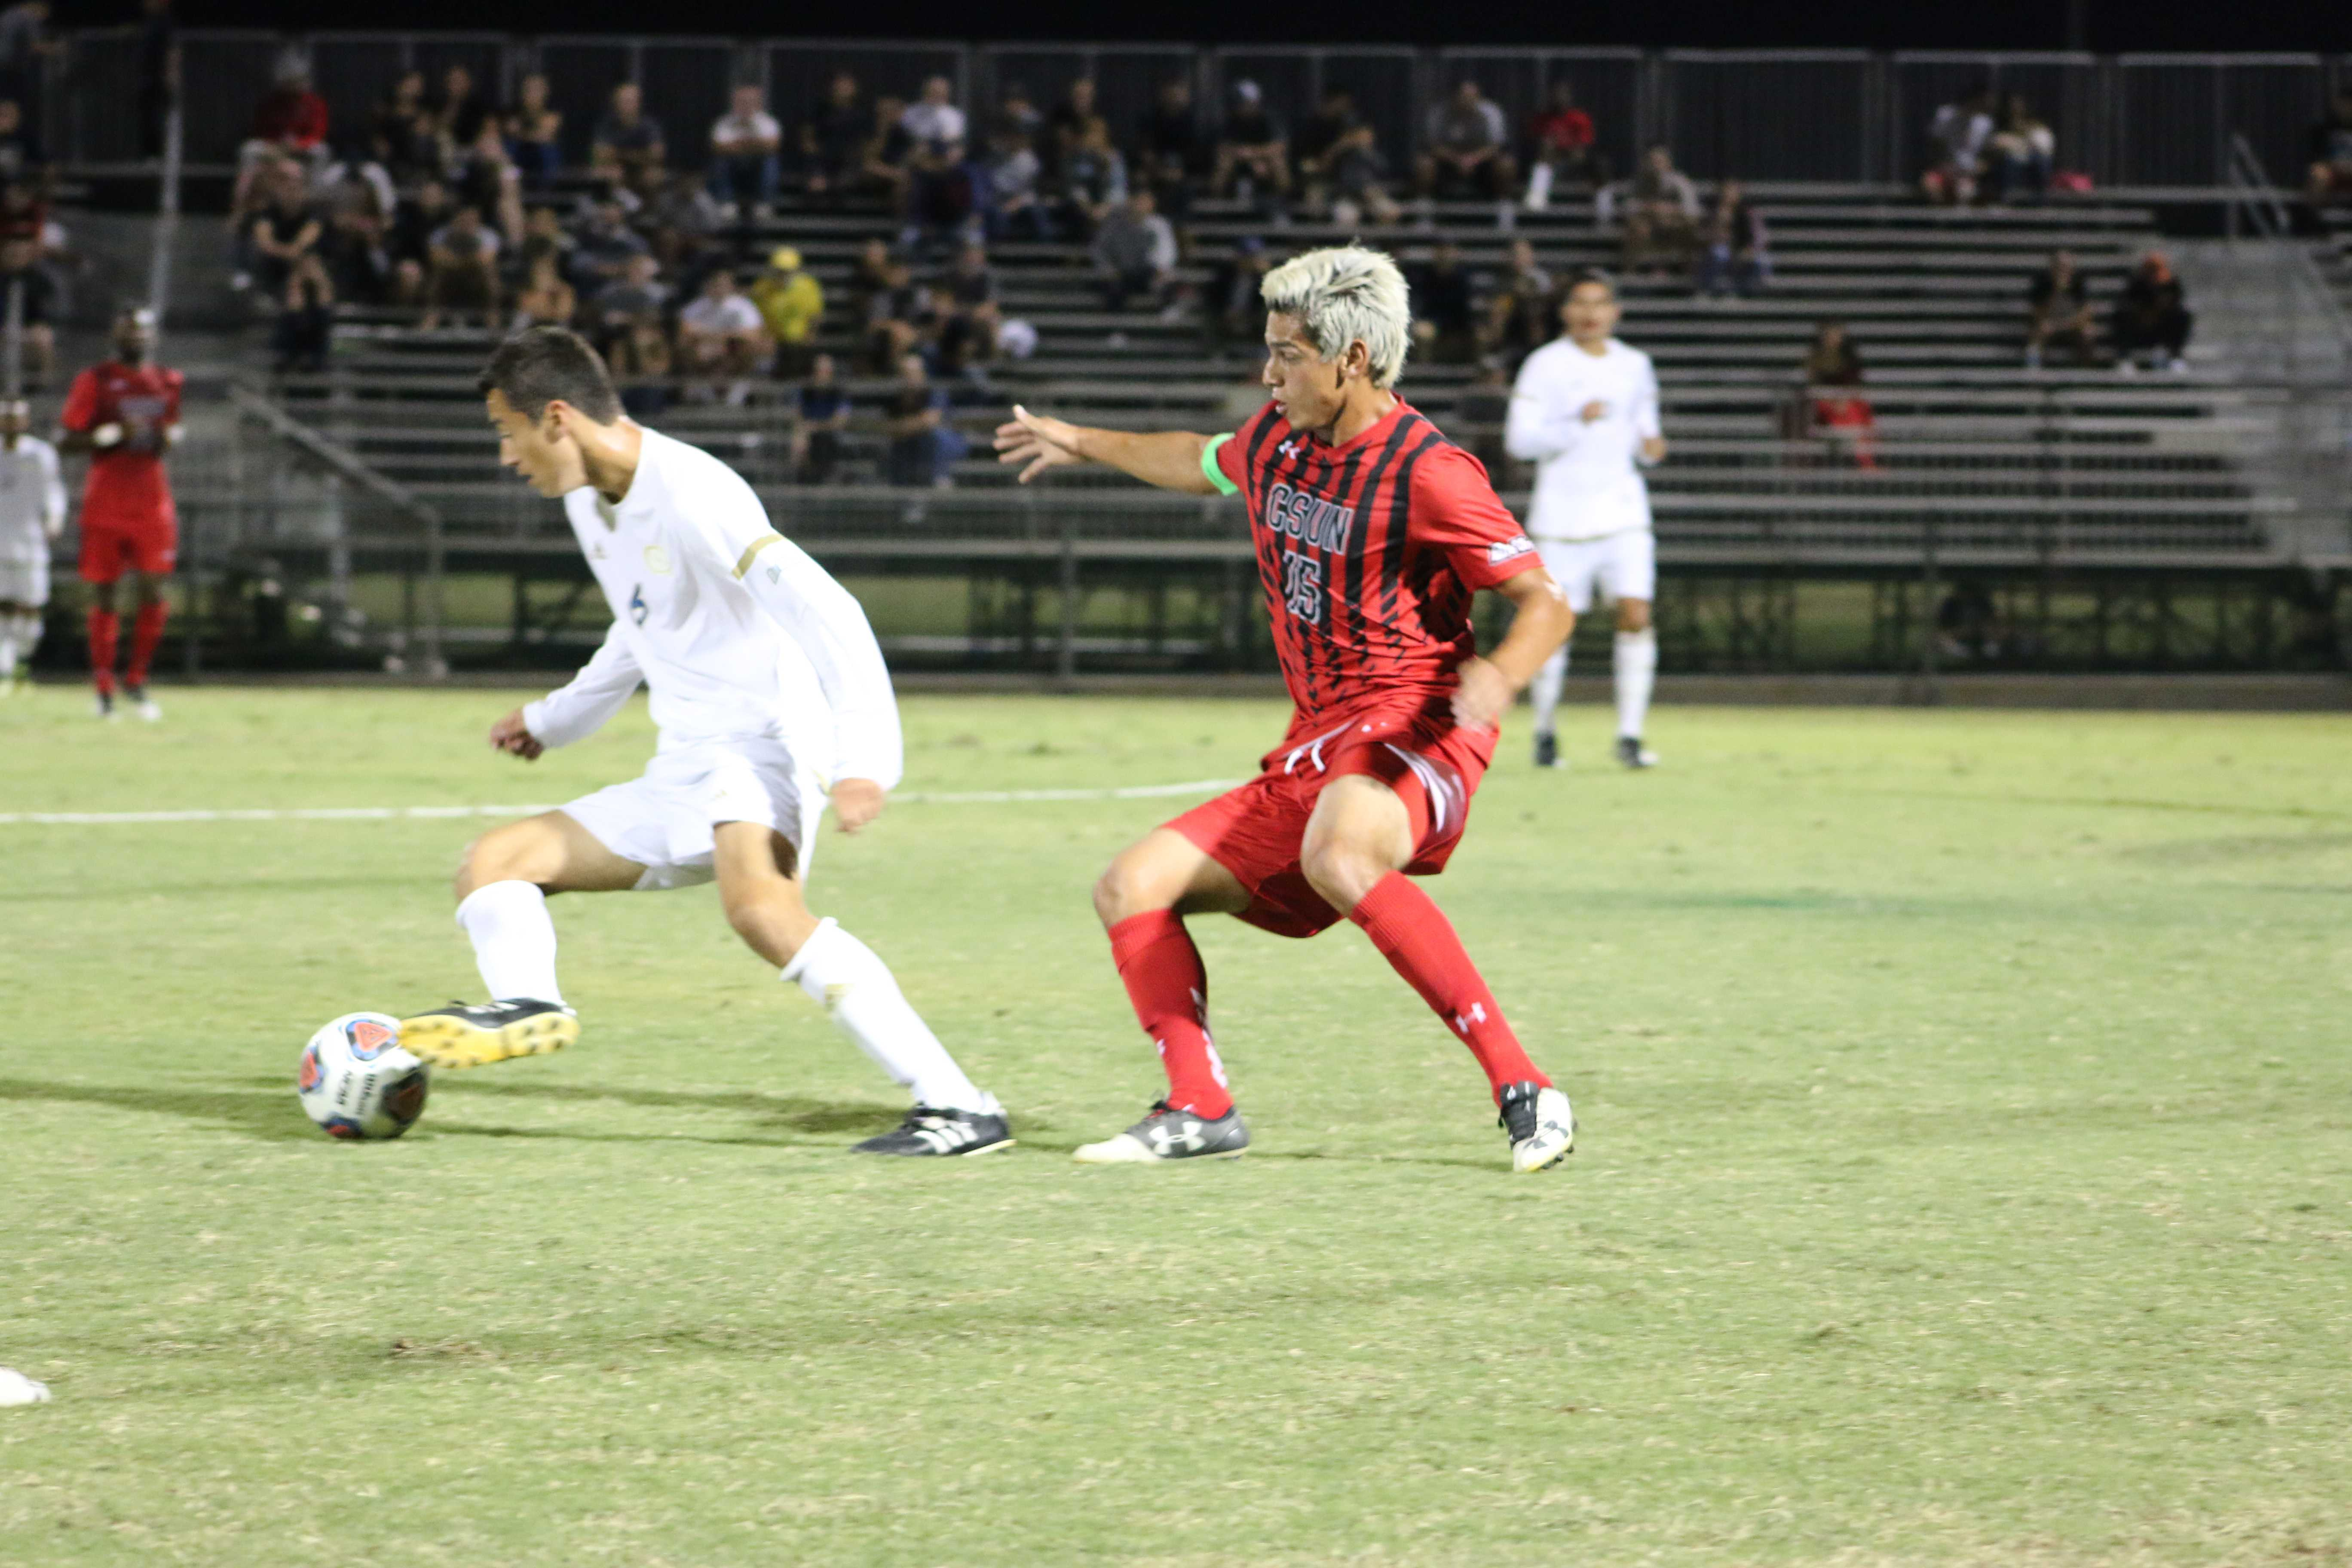 CSUN soccer player attempts to steal the ball